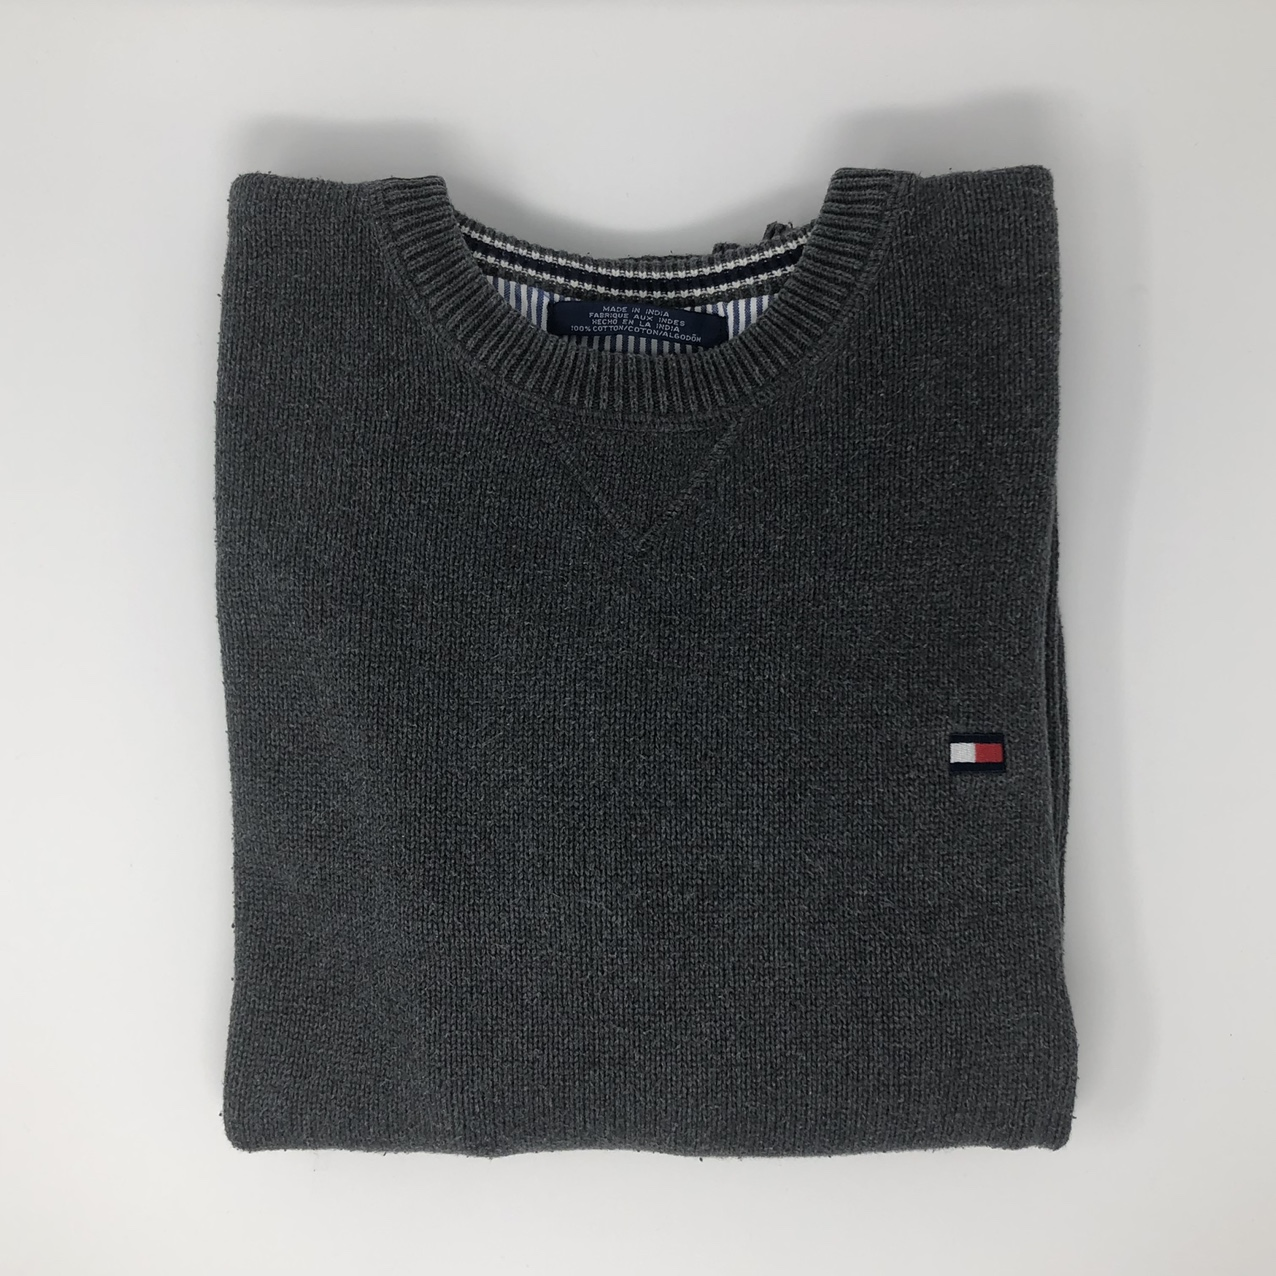 Product Image 1 - Tommy Hilfiger Gray Crew Neck